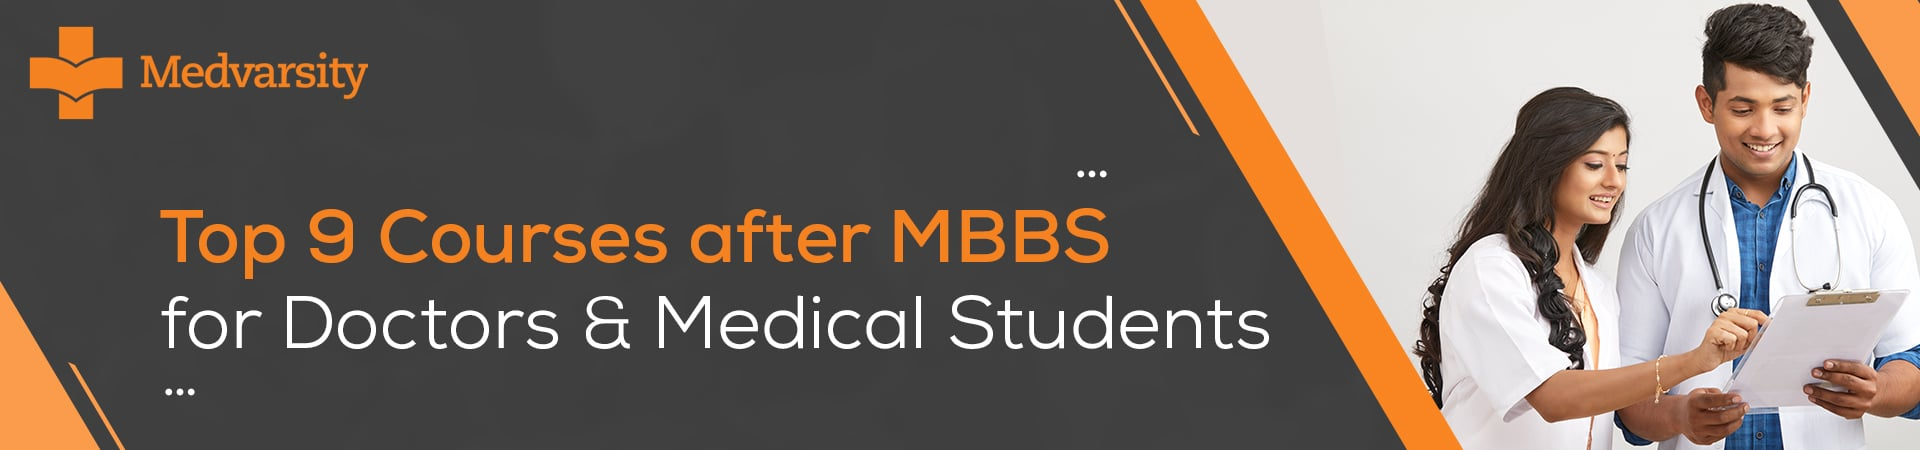 Top 9 Courses after MBBS for Doctors & Medical Students